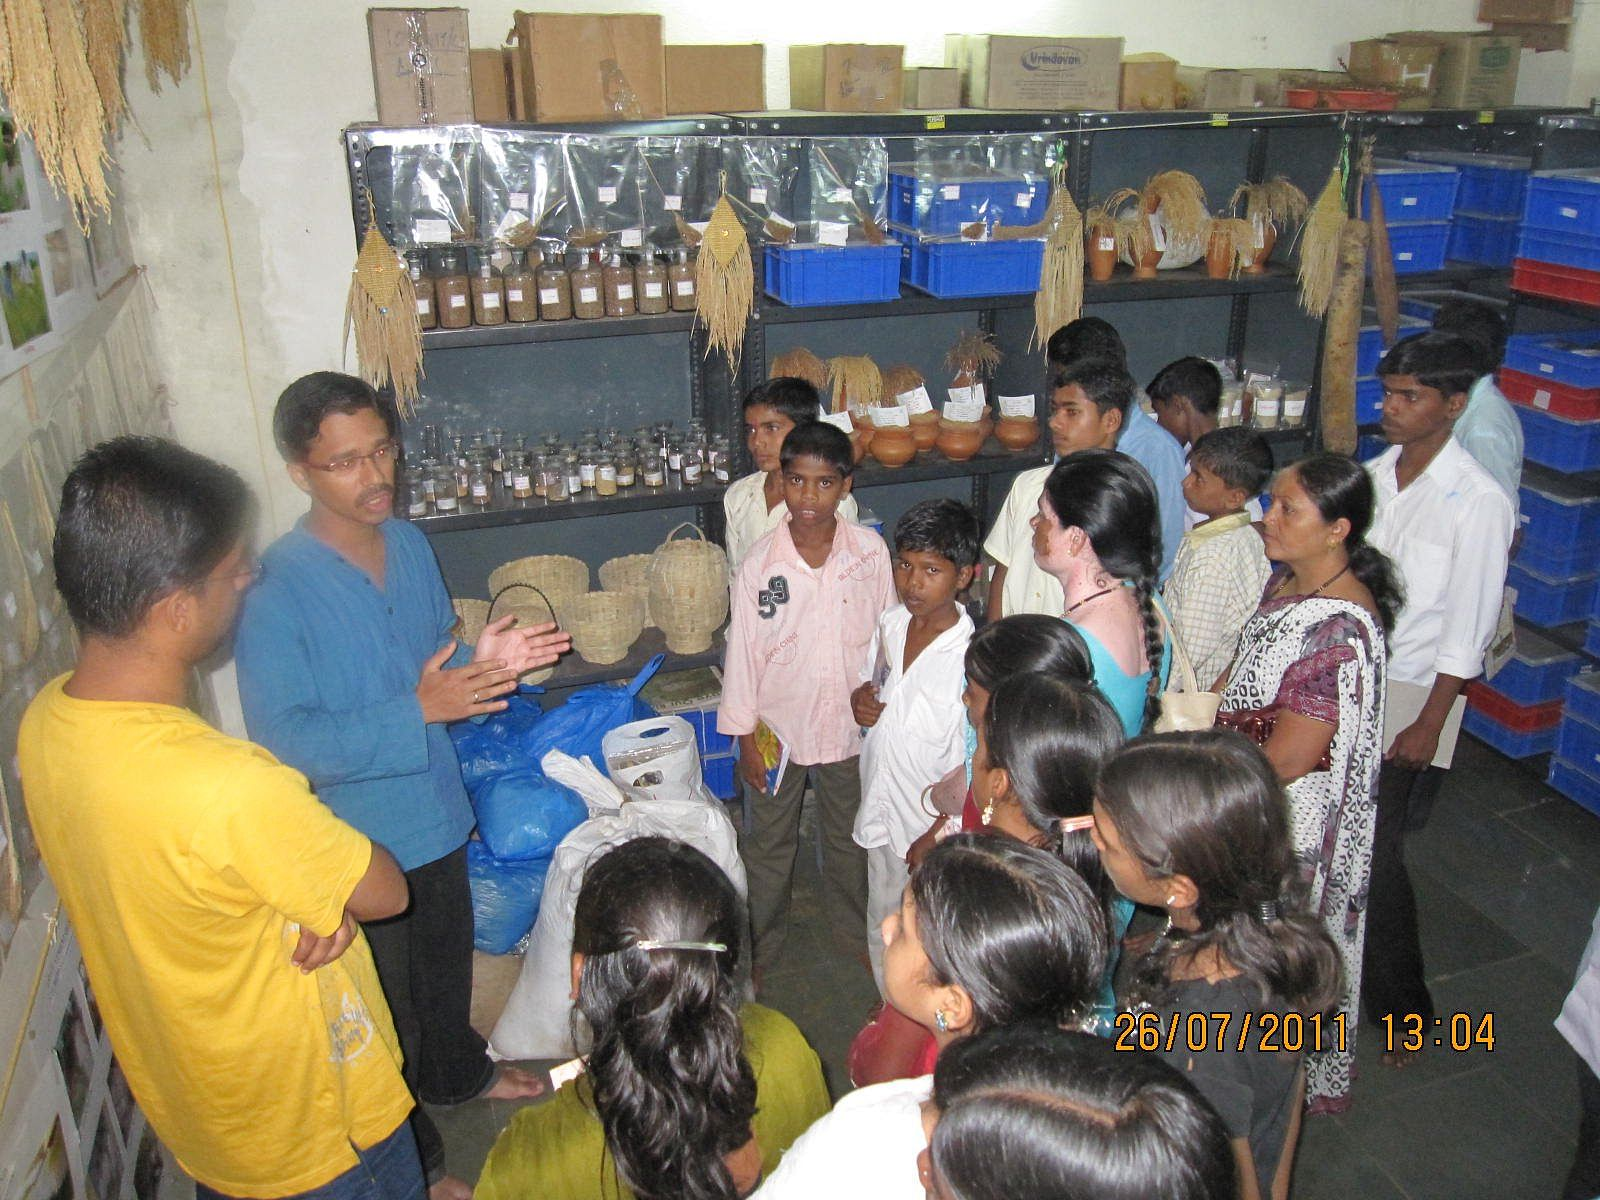 Saurabh Poddar with a group of students at Jawhar.